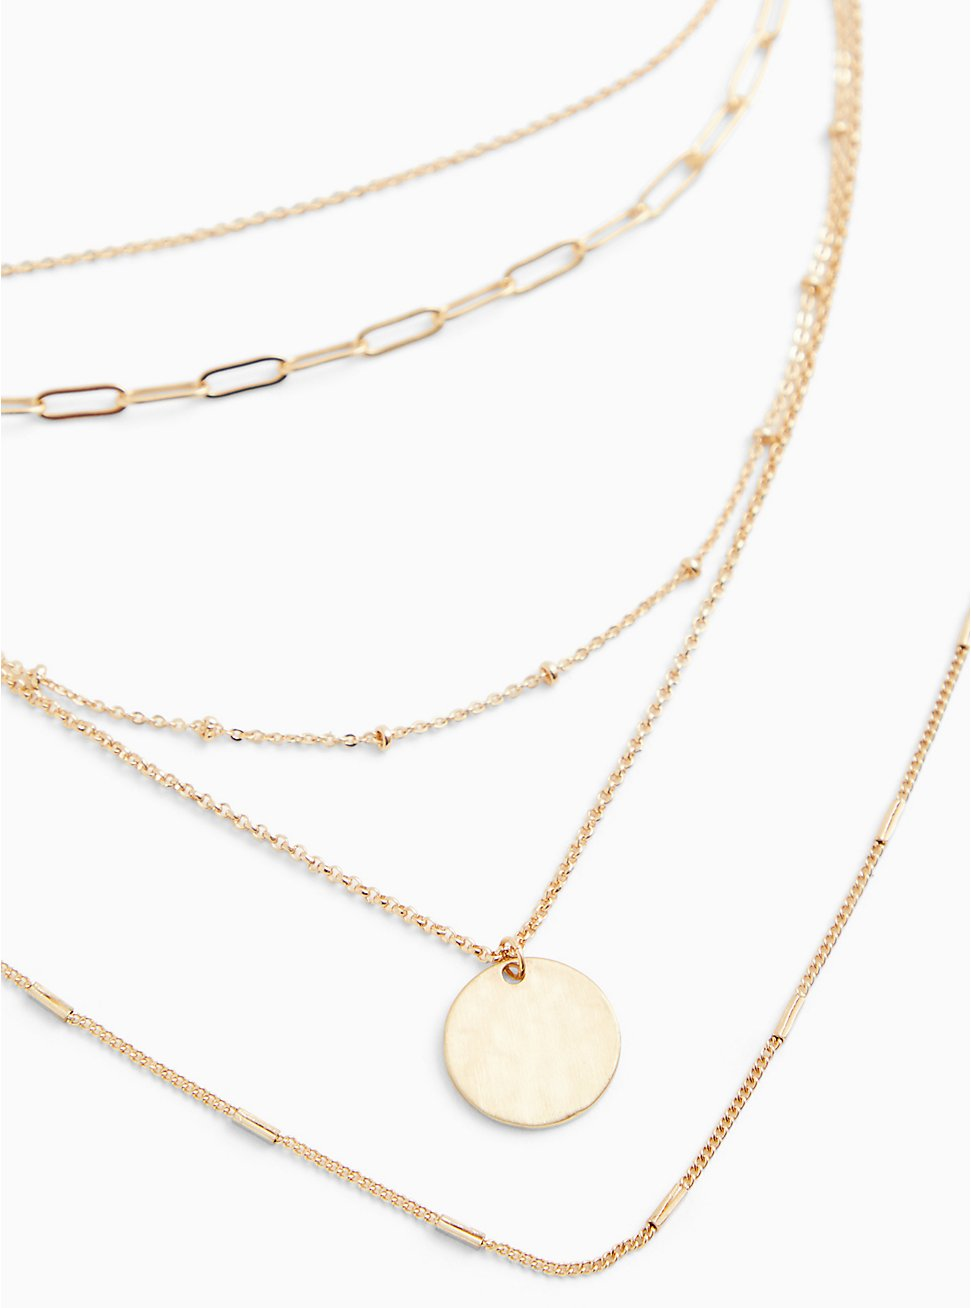 Gold-Tone Disk Pendant Layered Necklace , , hi-res